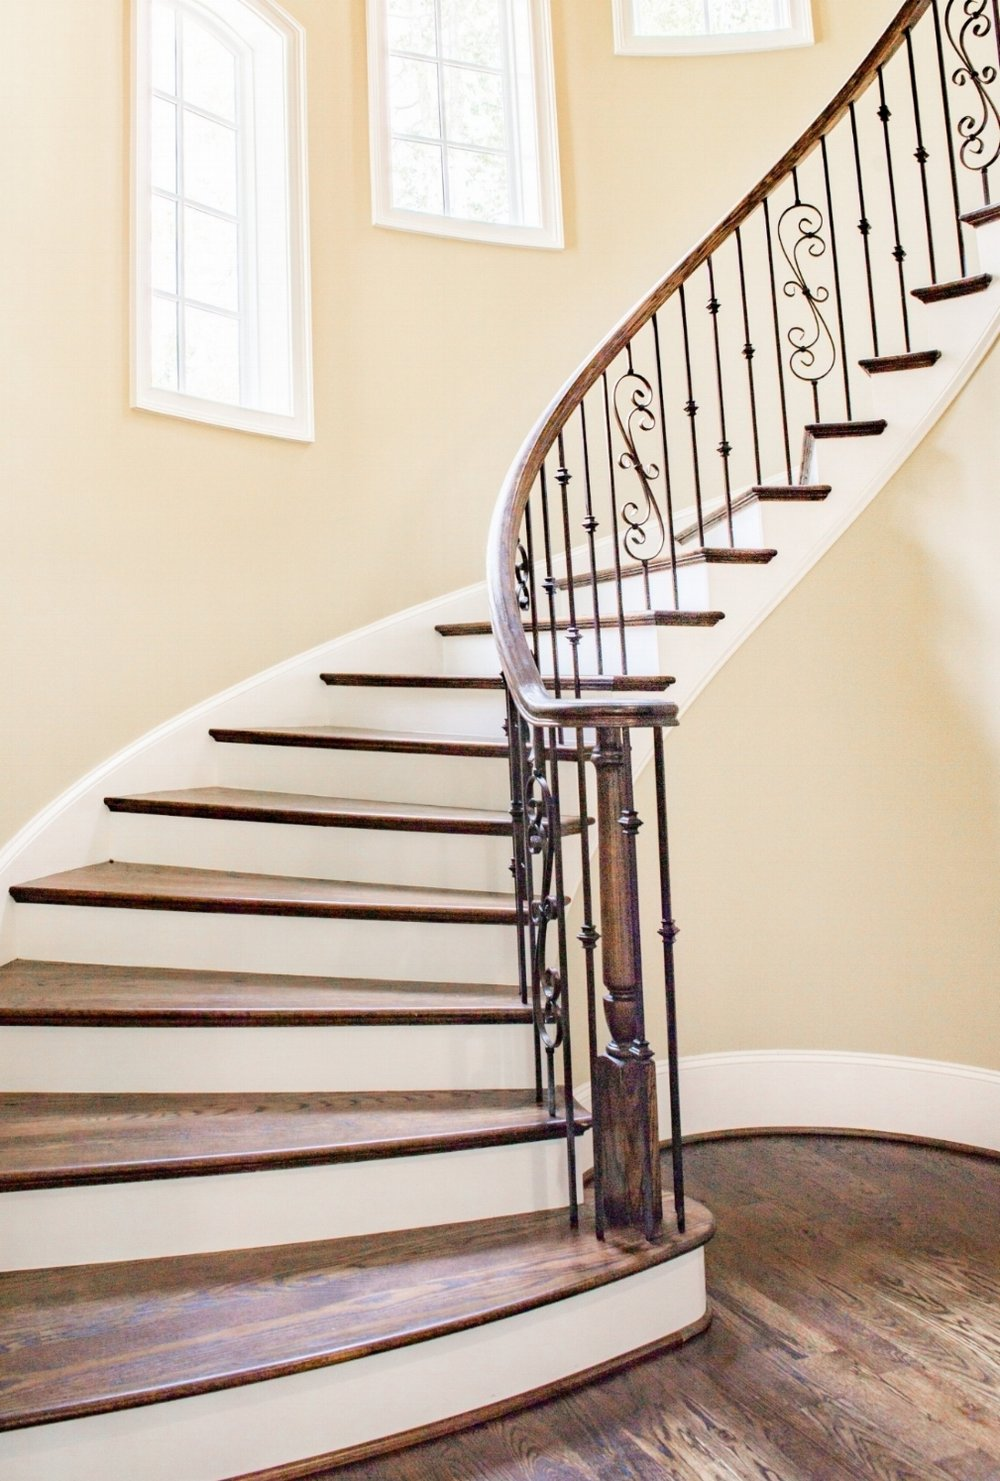 Stairs Renovation - Covering all types of stairs renovation; from carpet to solidwood, re-staining, re-newing, or even re-construction. We would be happy to offer a free estimate for your project!